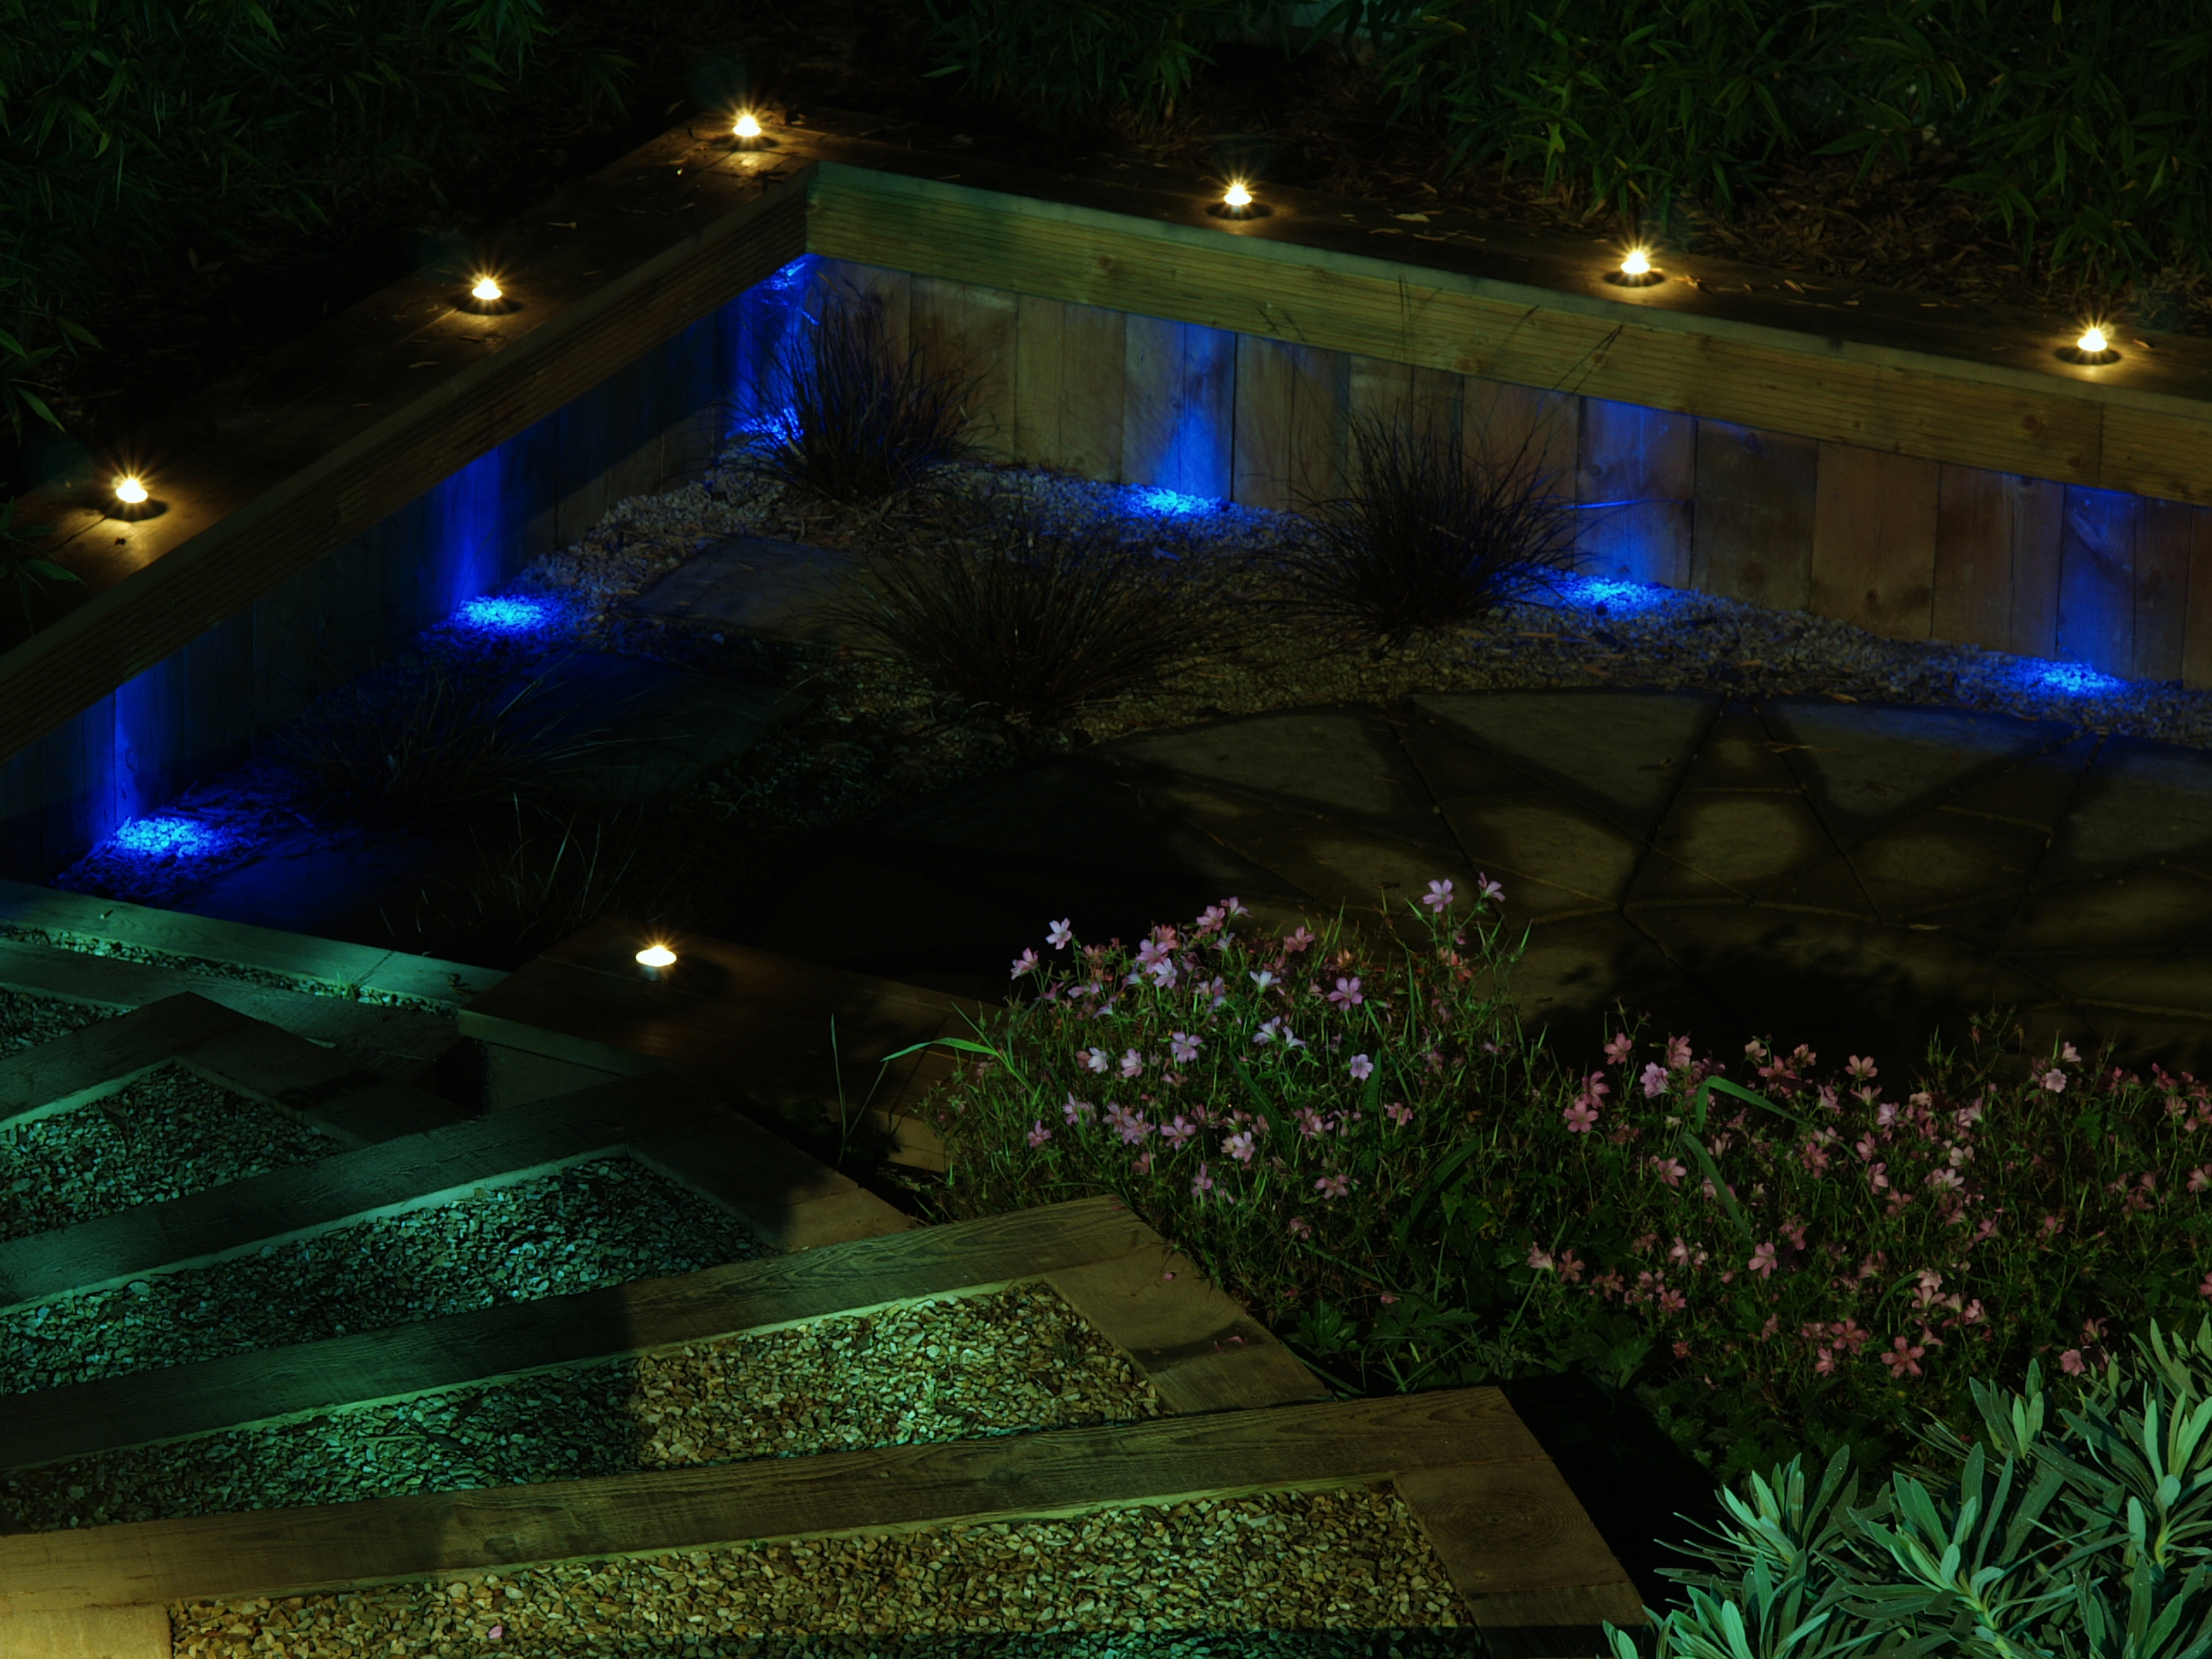 Outdoor garden lighting design services shankill dublin for Garden lighting designs